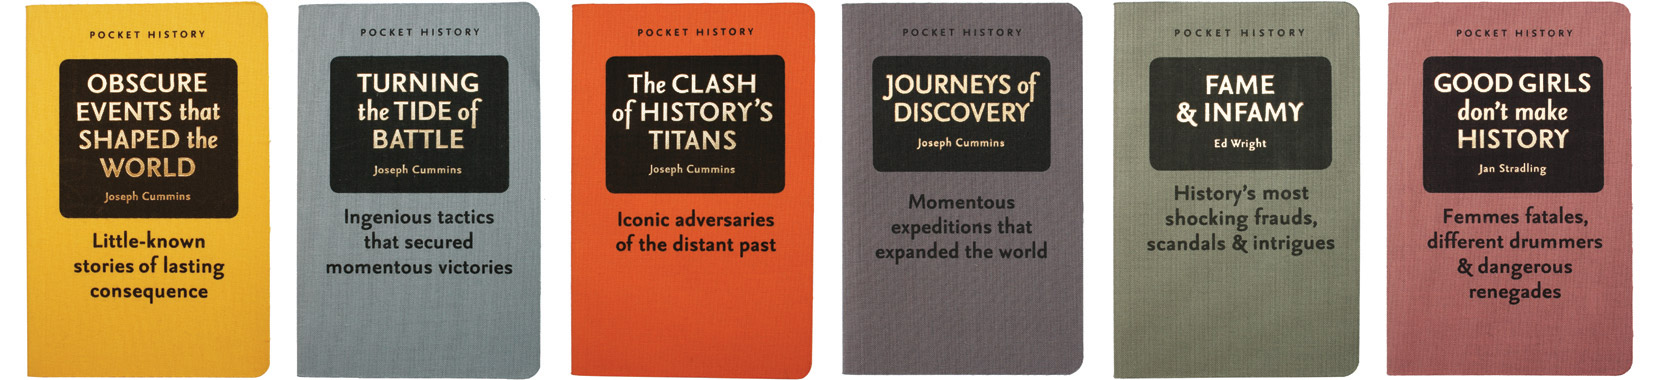 Pocket History Series